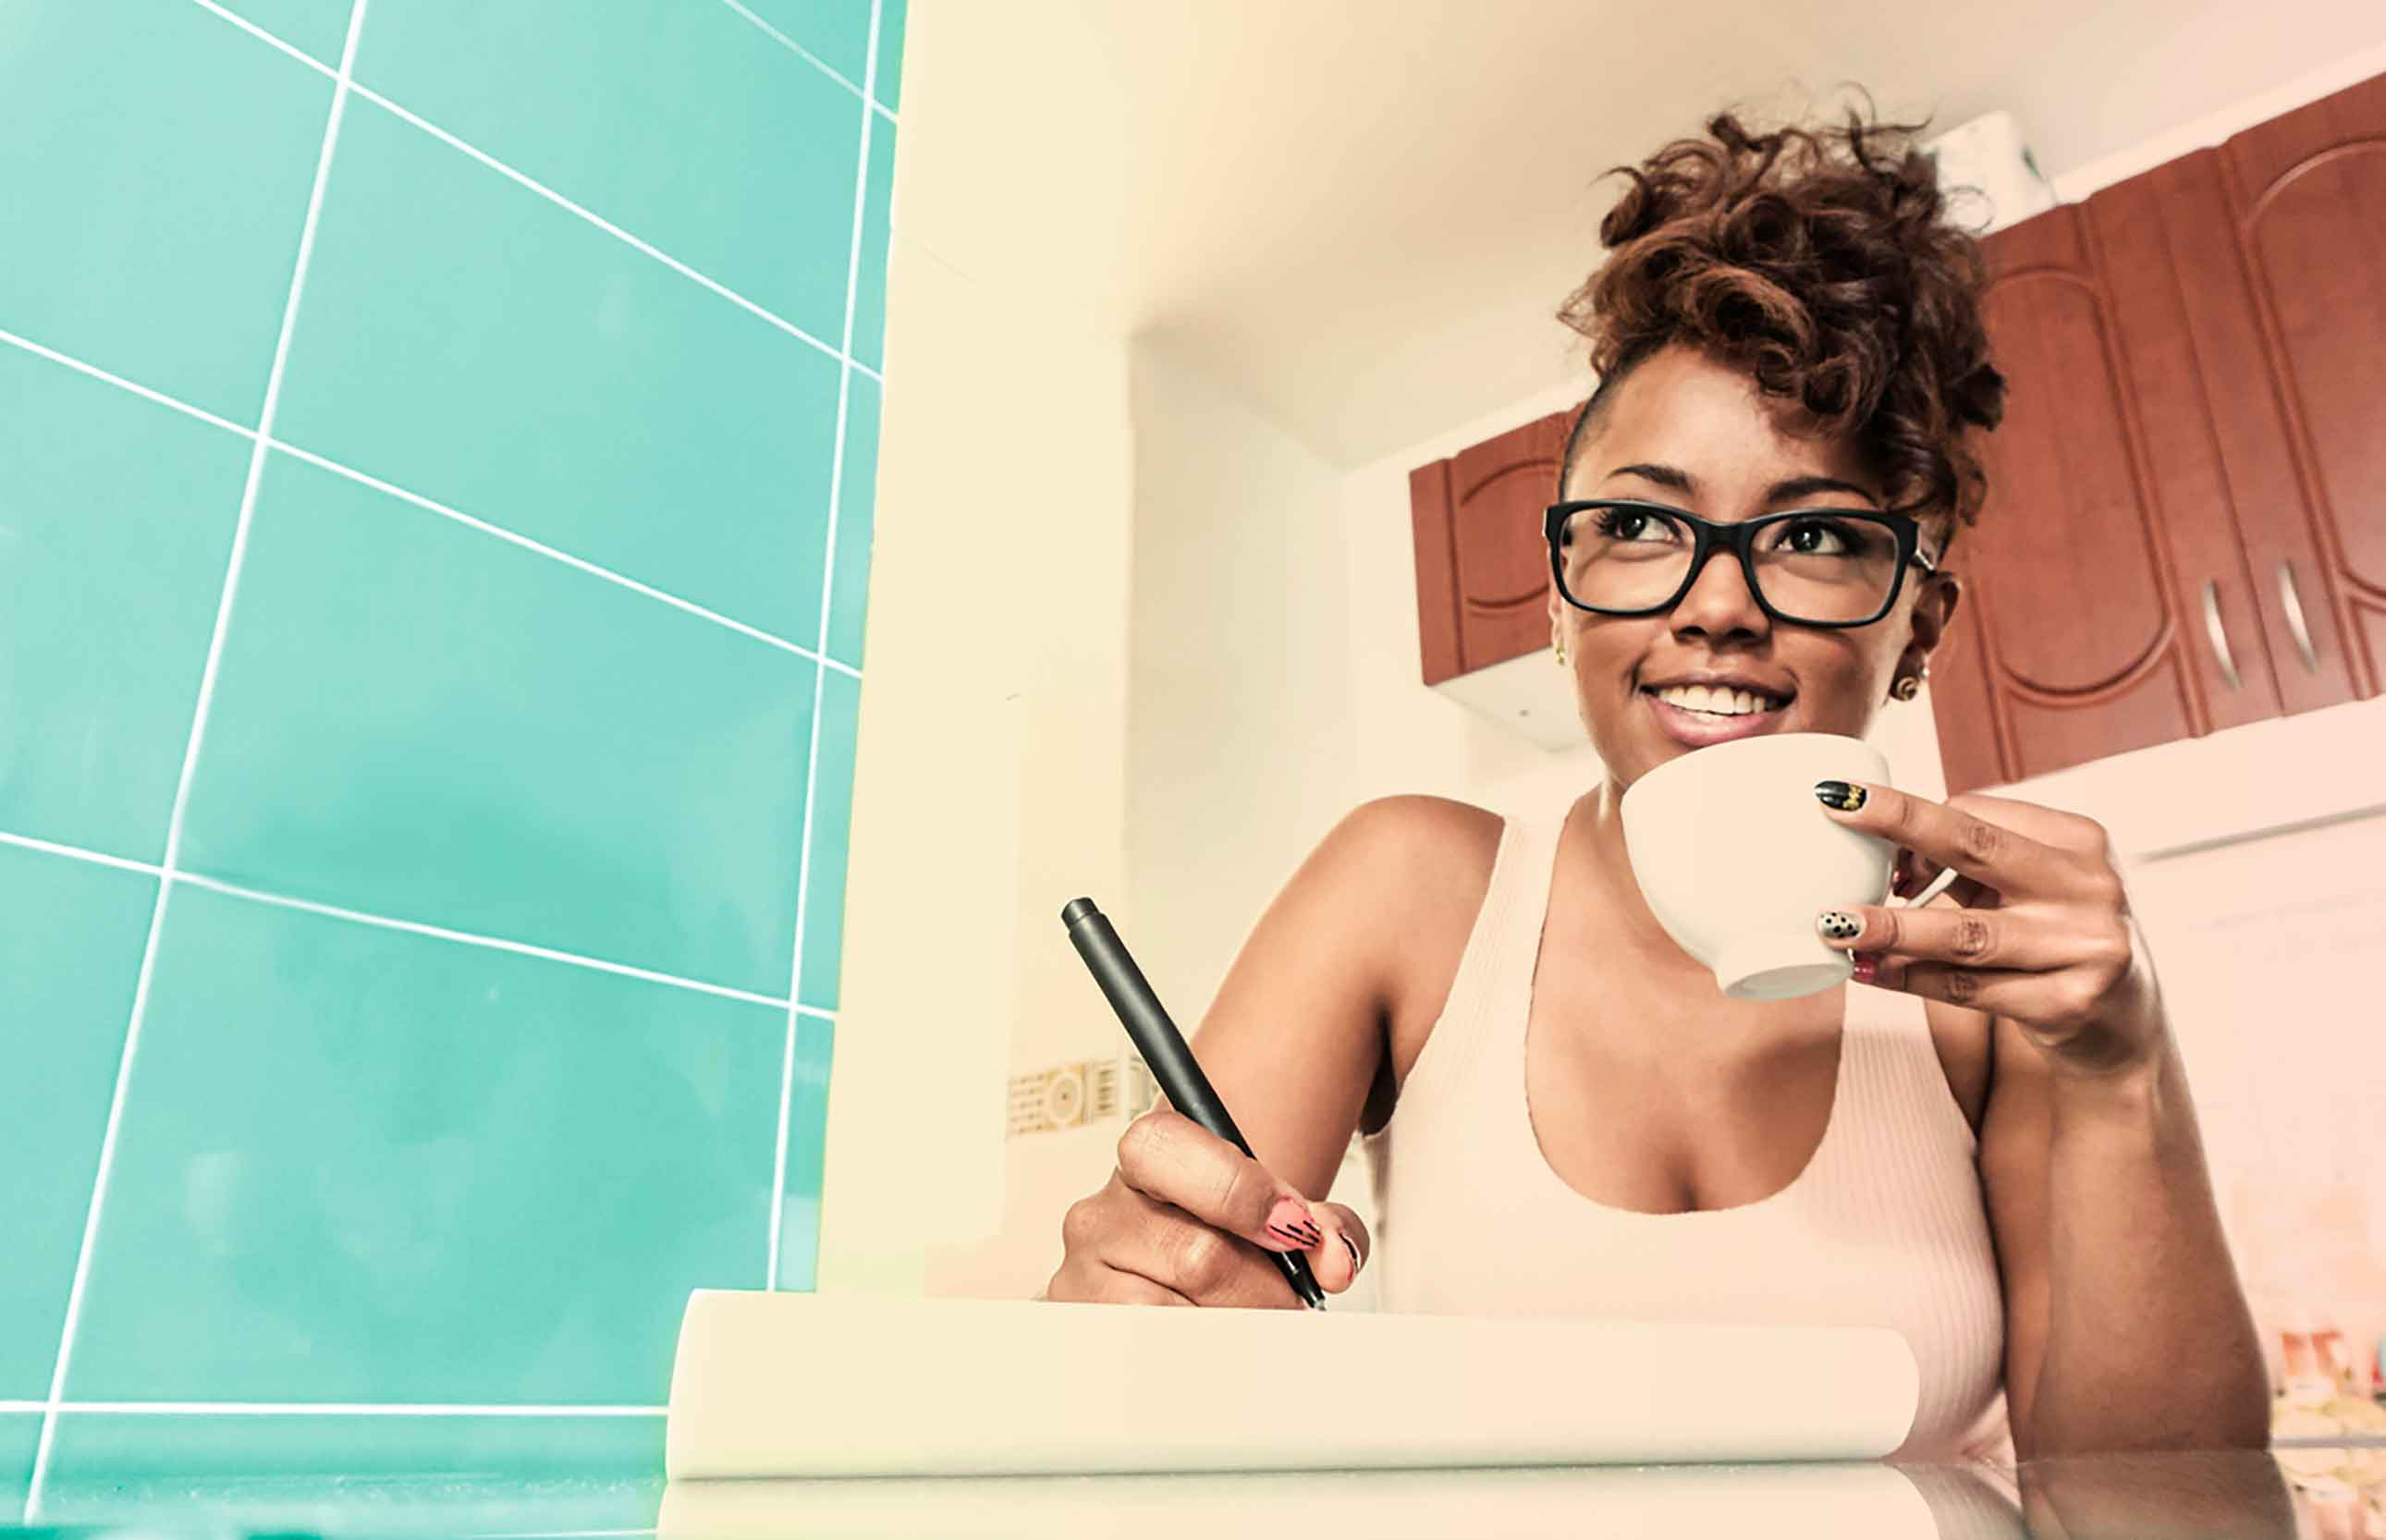 Want to make sure you get the home you love? Open up with a heartfelt letter to the seller.